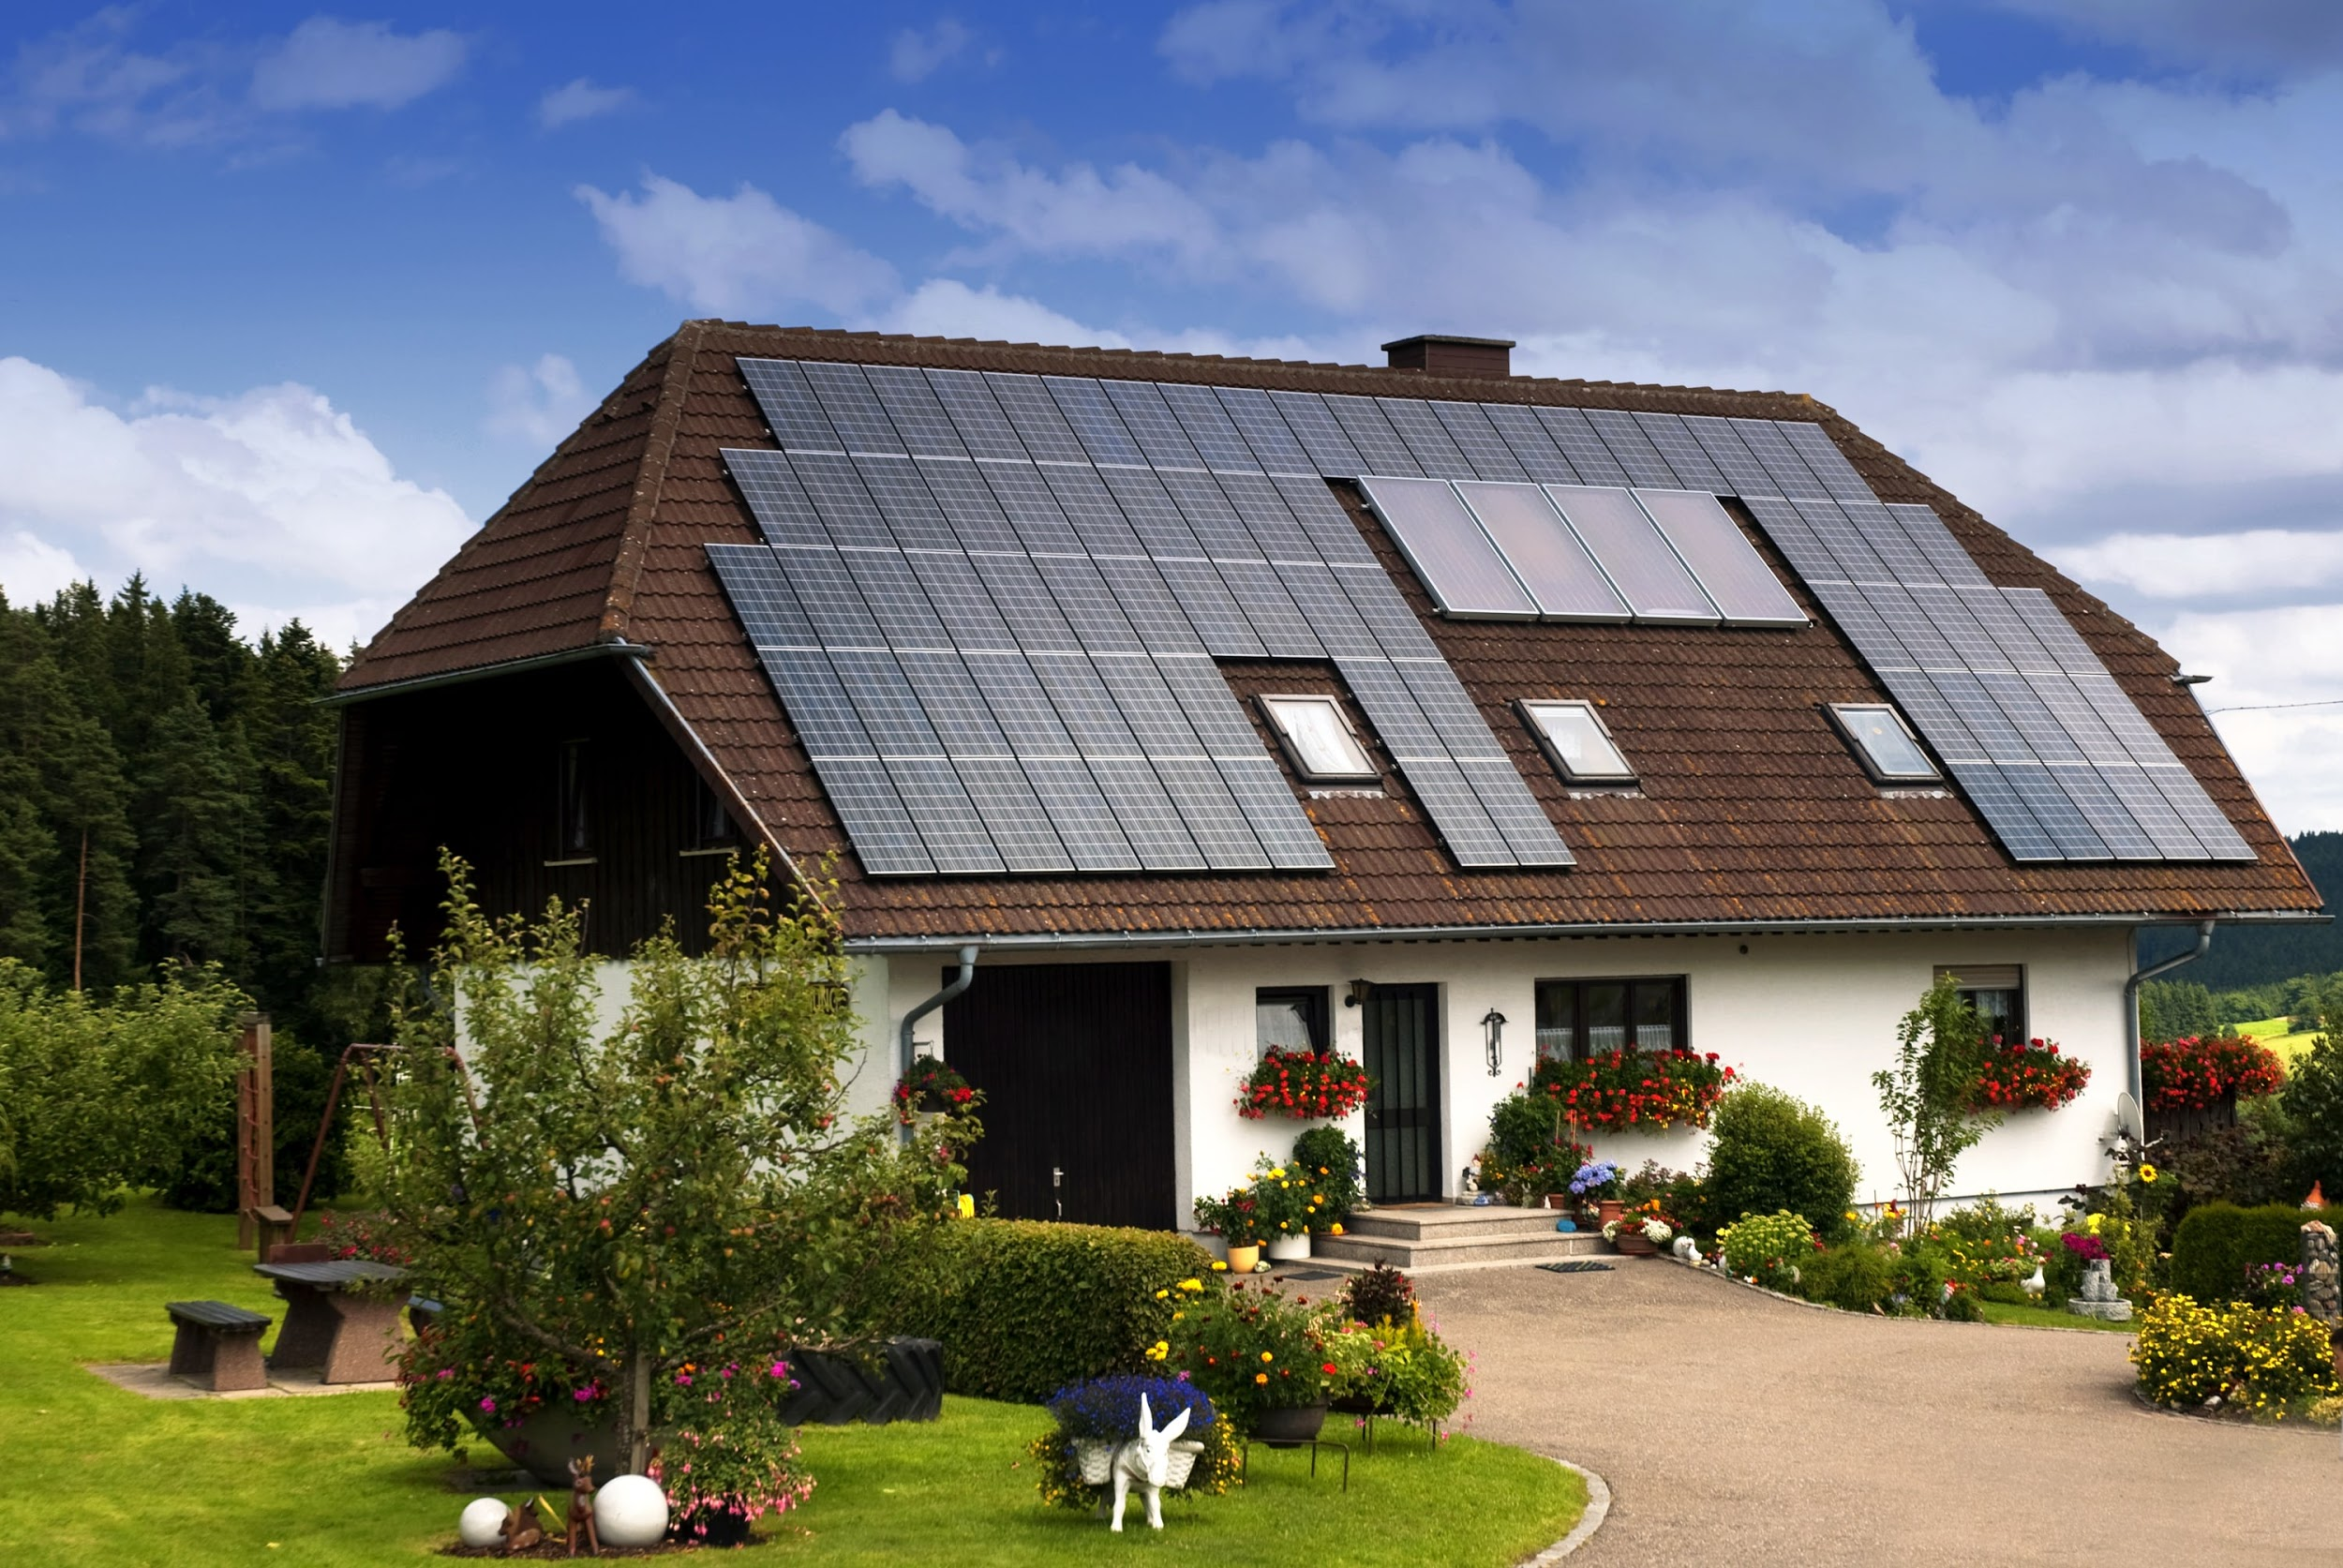 Energy savings systems make your house more desirable